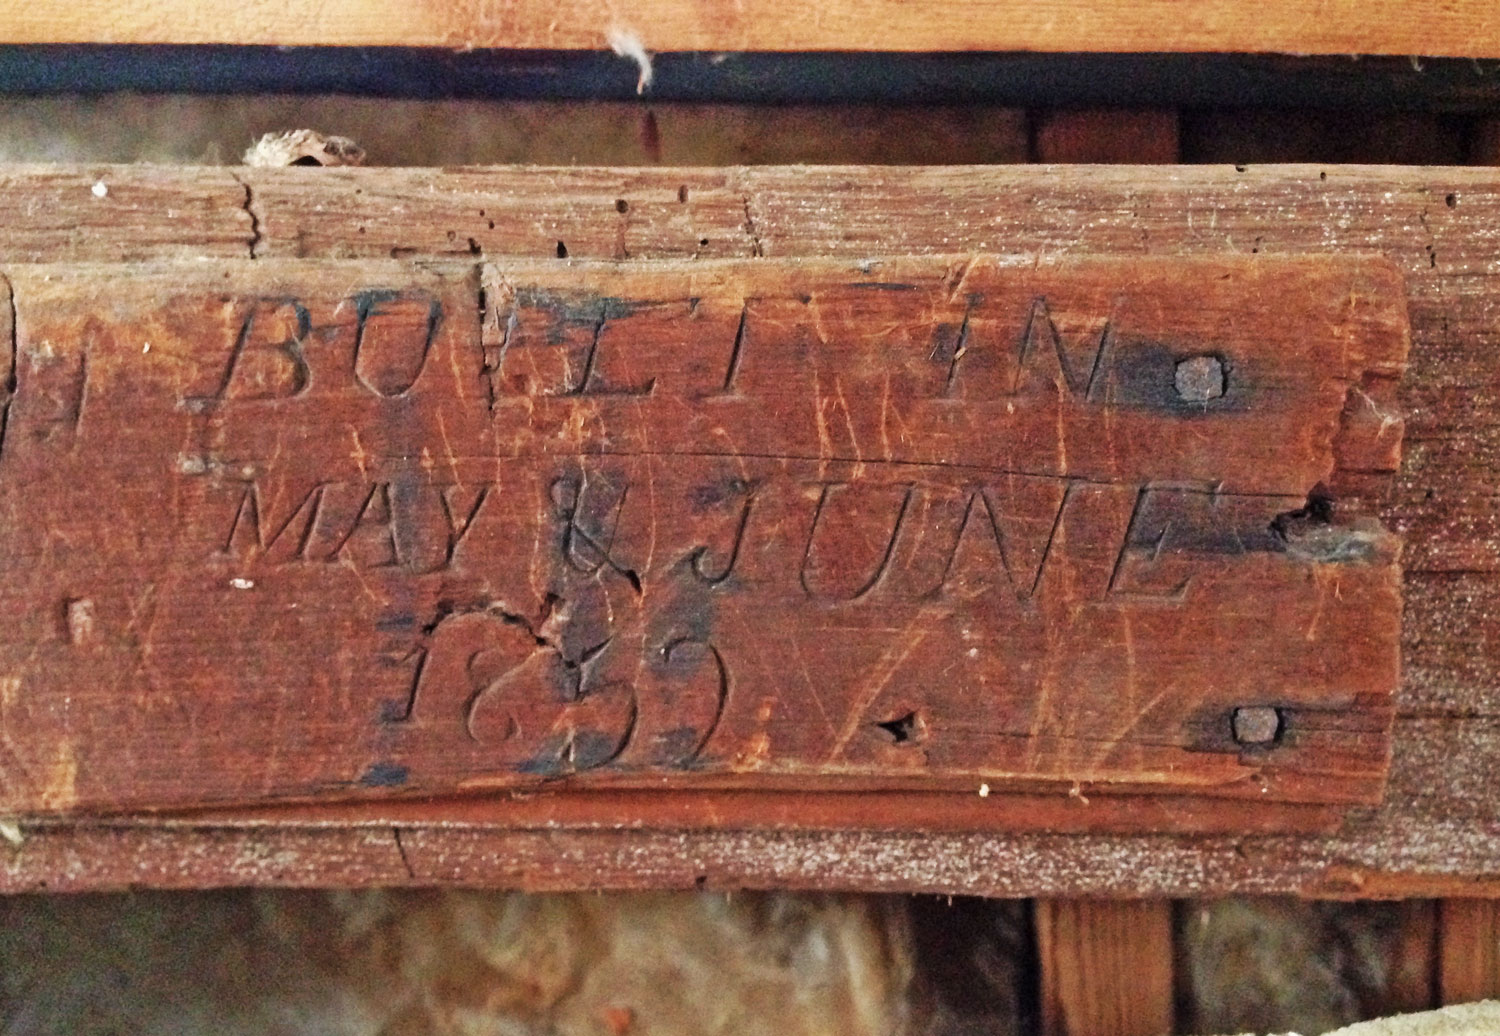 Original 1852 inscription date of barn